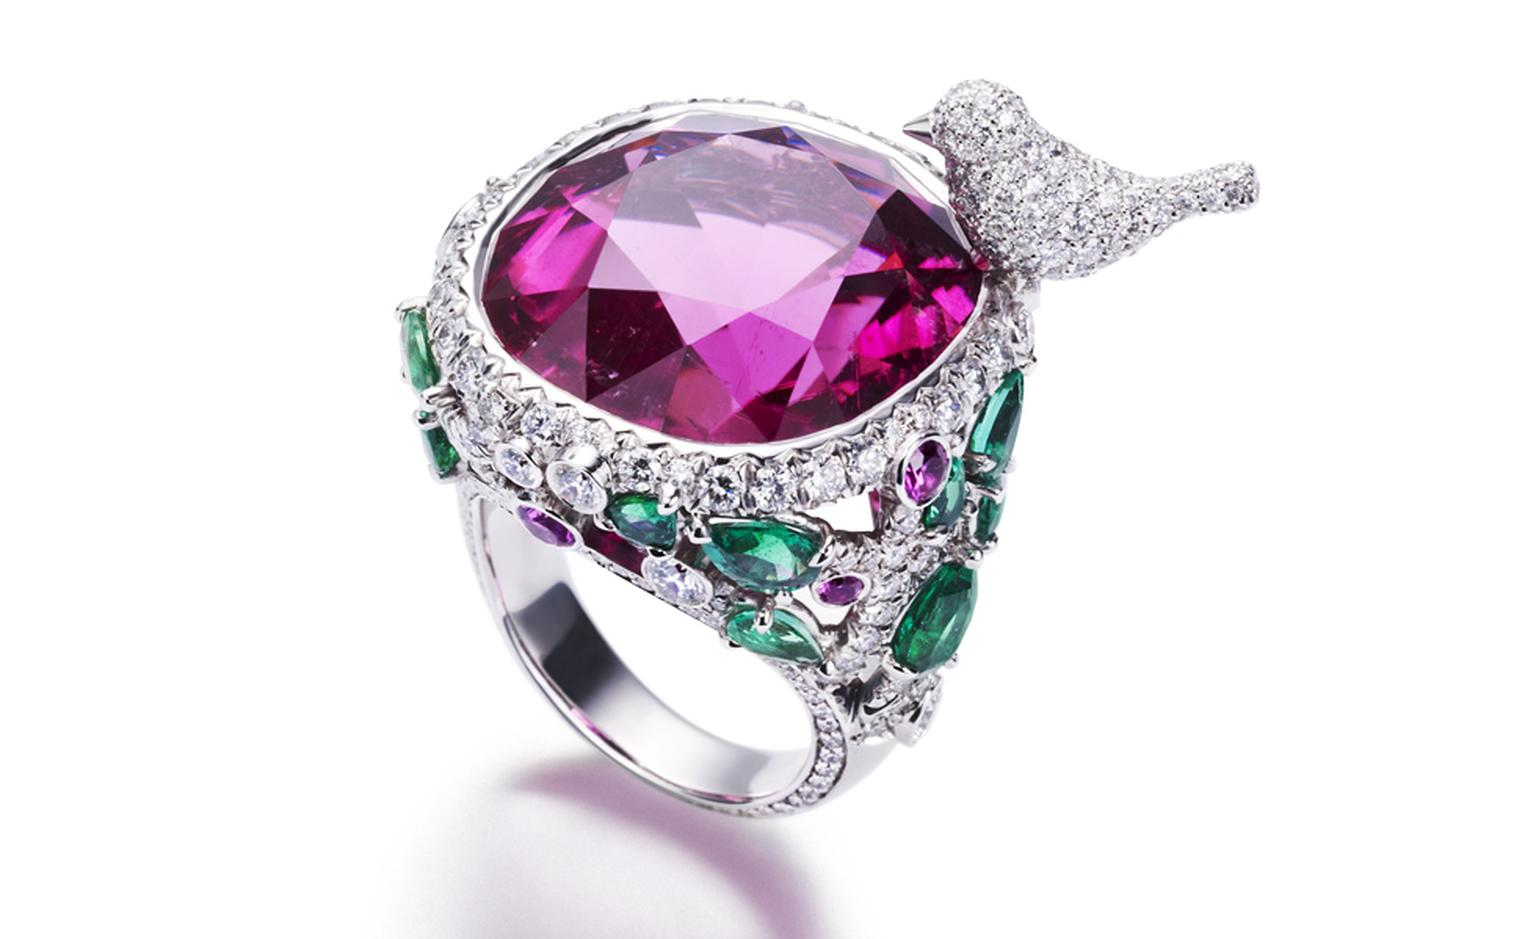 PIAGET, Limelight Garden Party, white gold gold ring set with diamonds, emeralds, rubellite and pink sapphires. POA